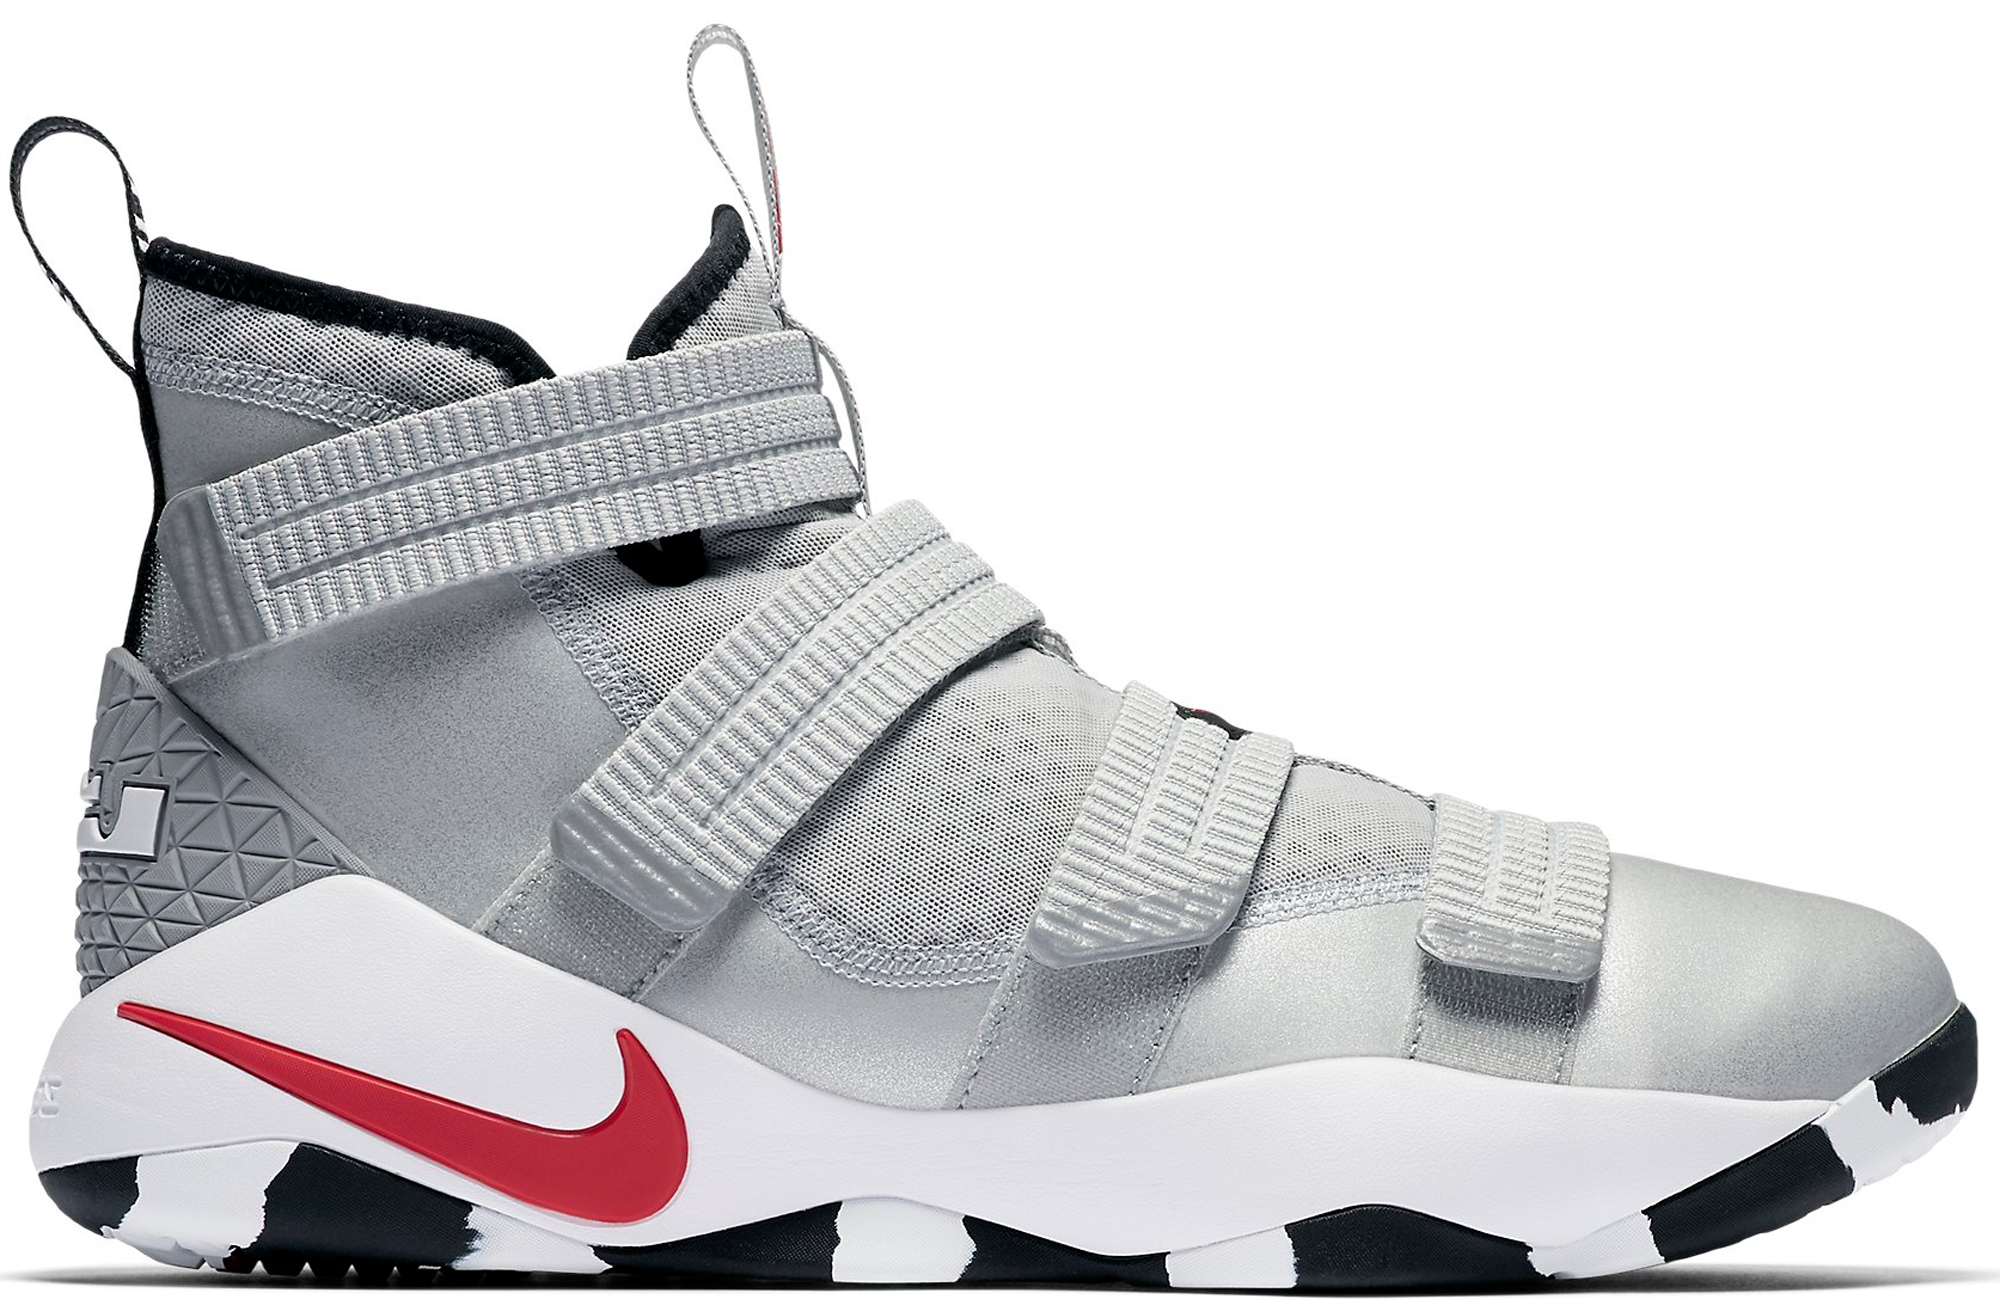 Nike LeBron Zoom Soldier 11 Silver